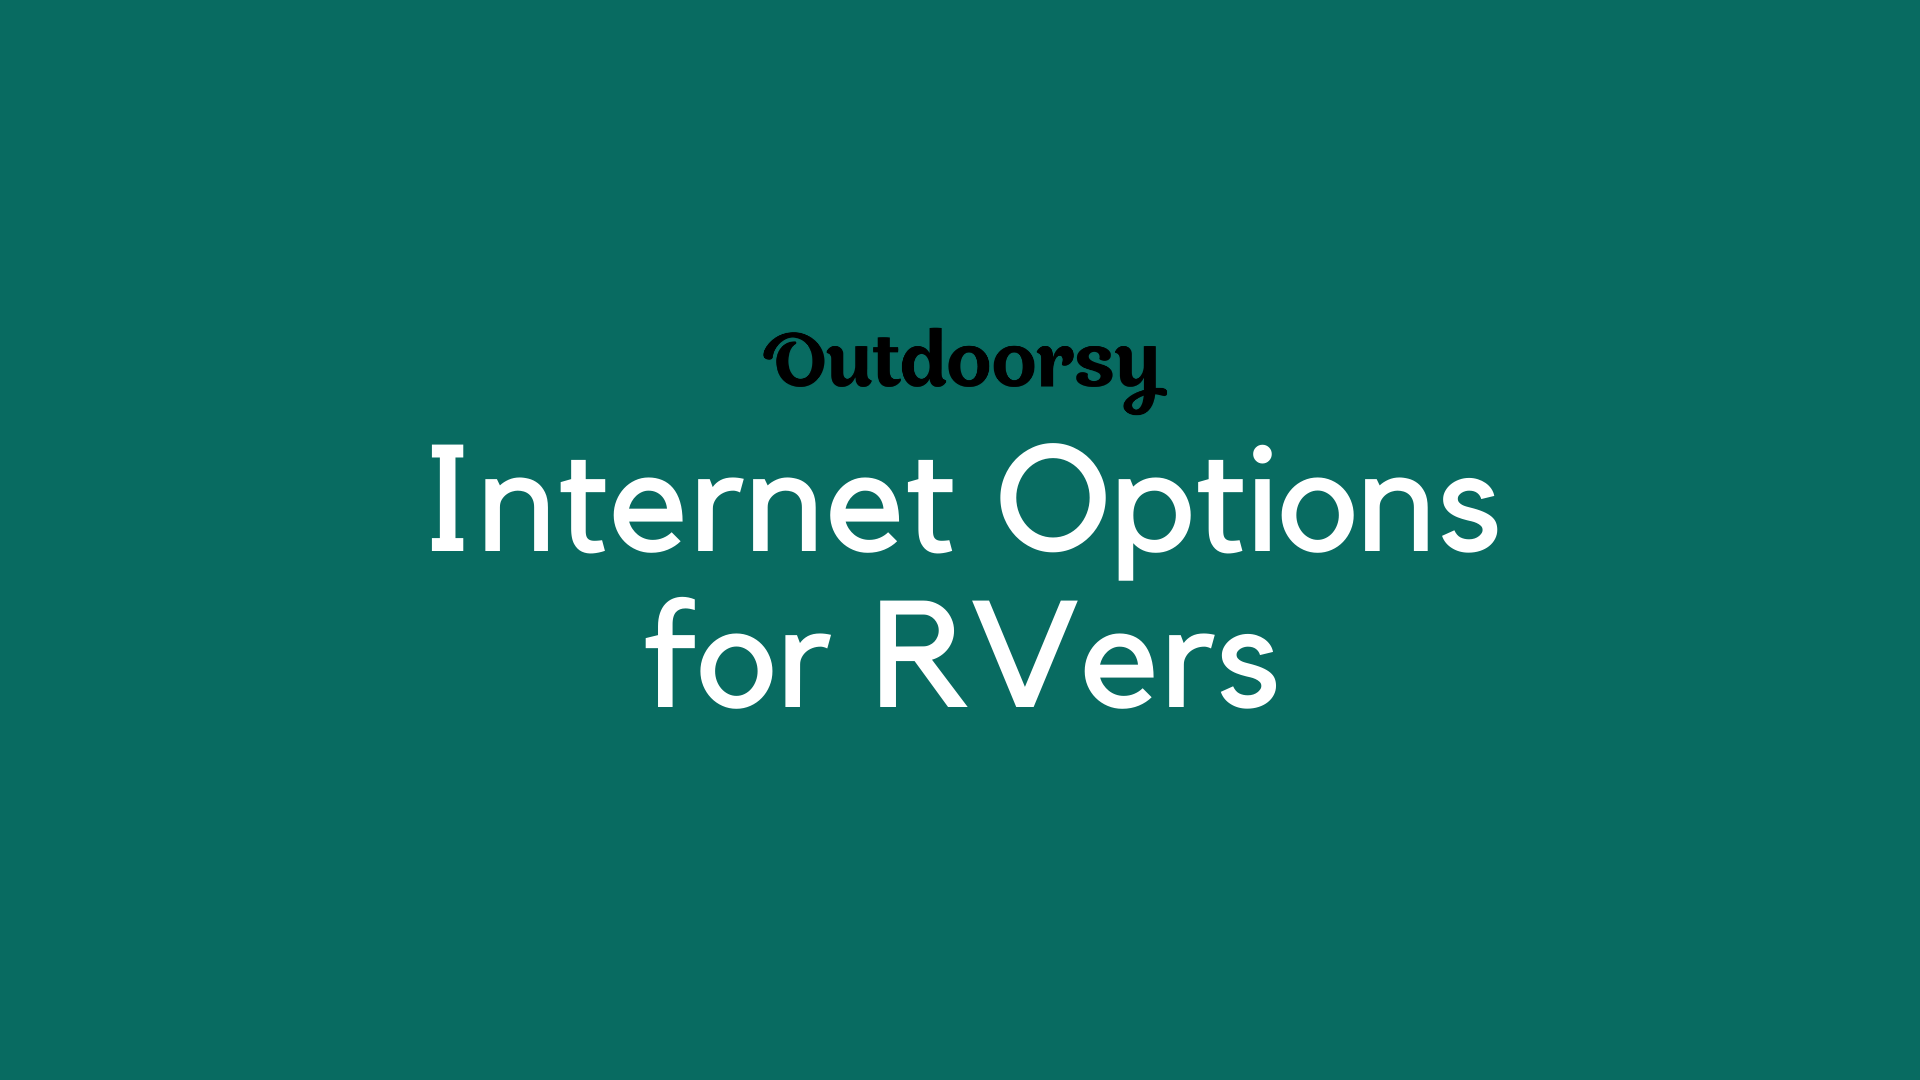 Internet Options for RVers